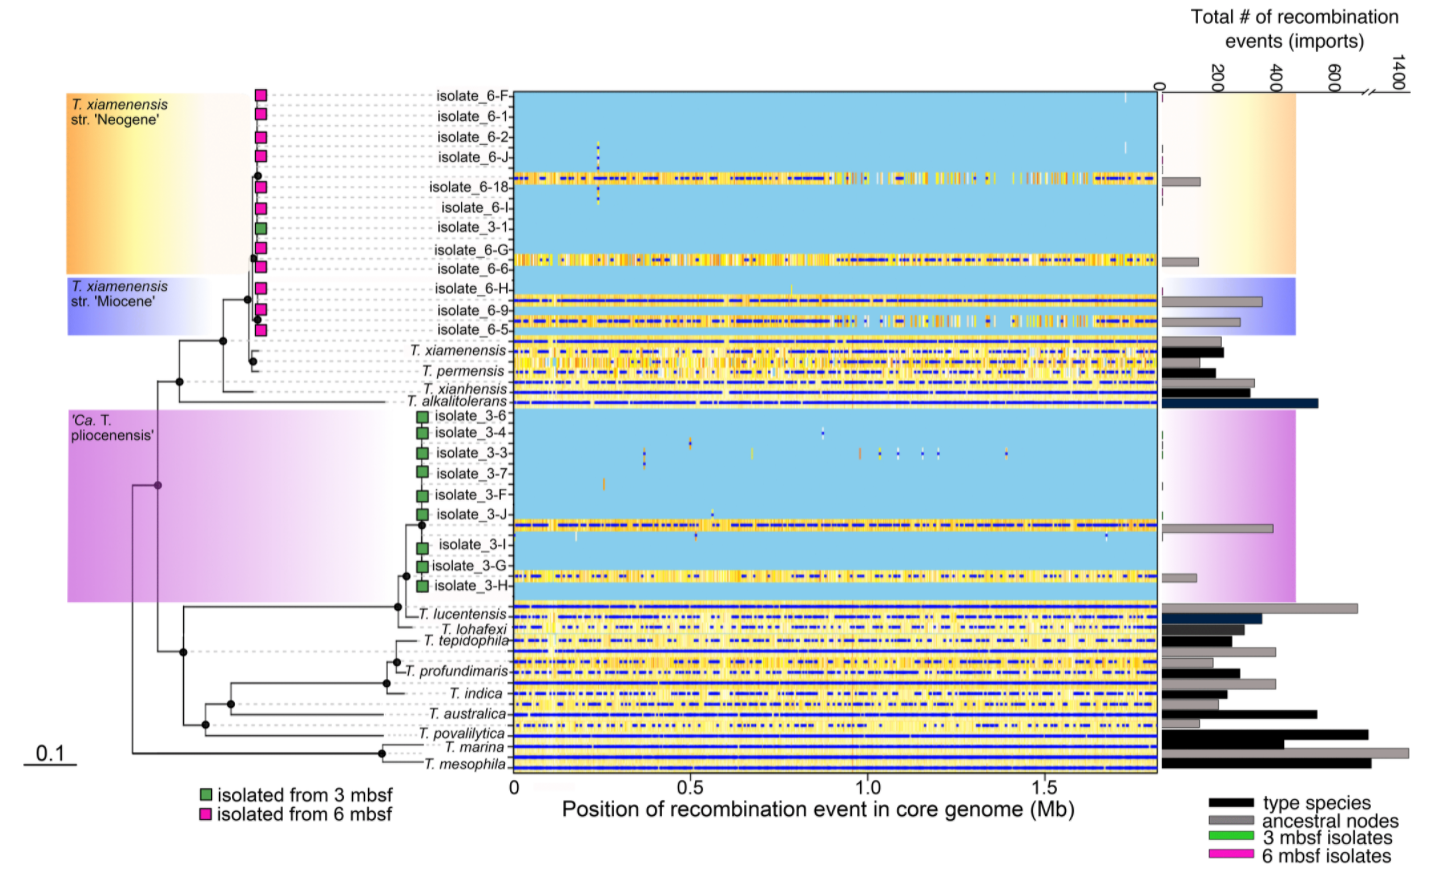 A lack of recombination in genomes from deep biosphere bacterial isolates